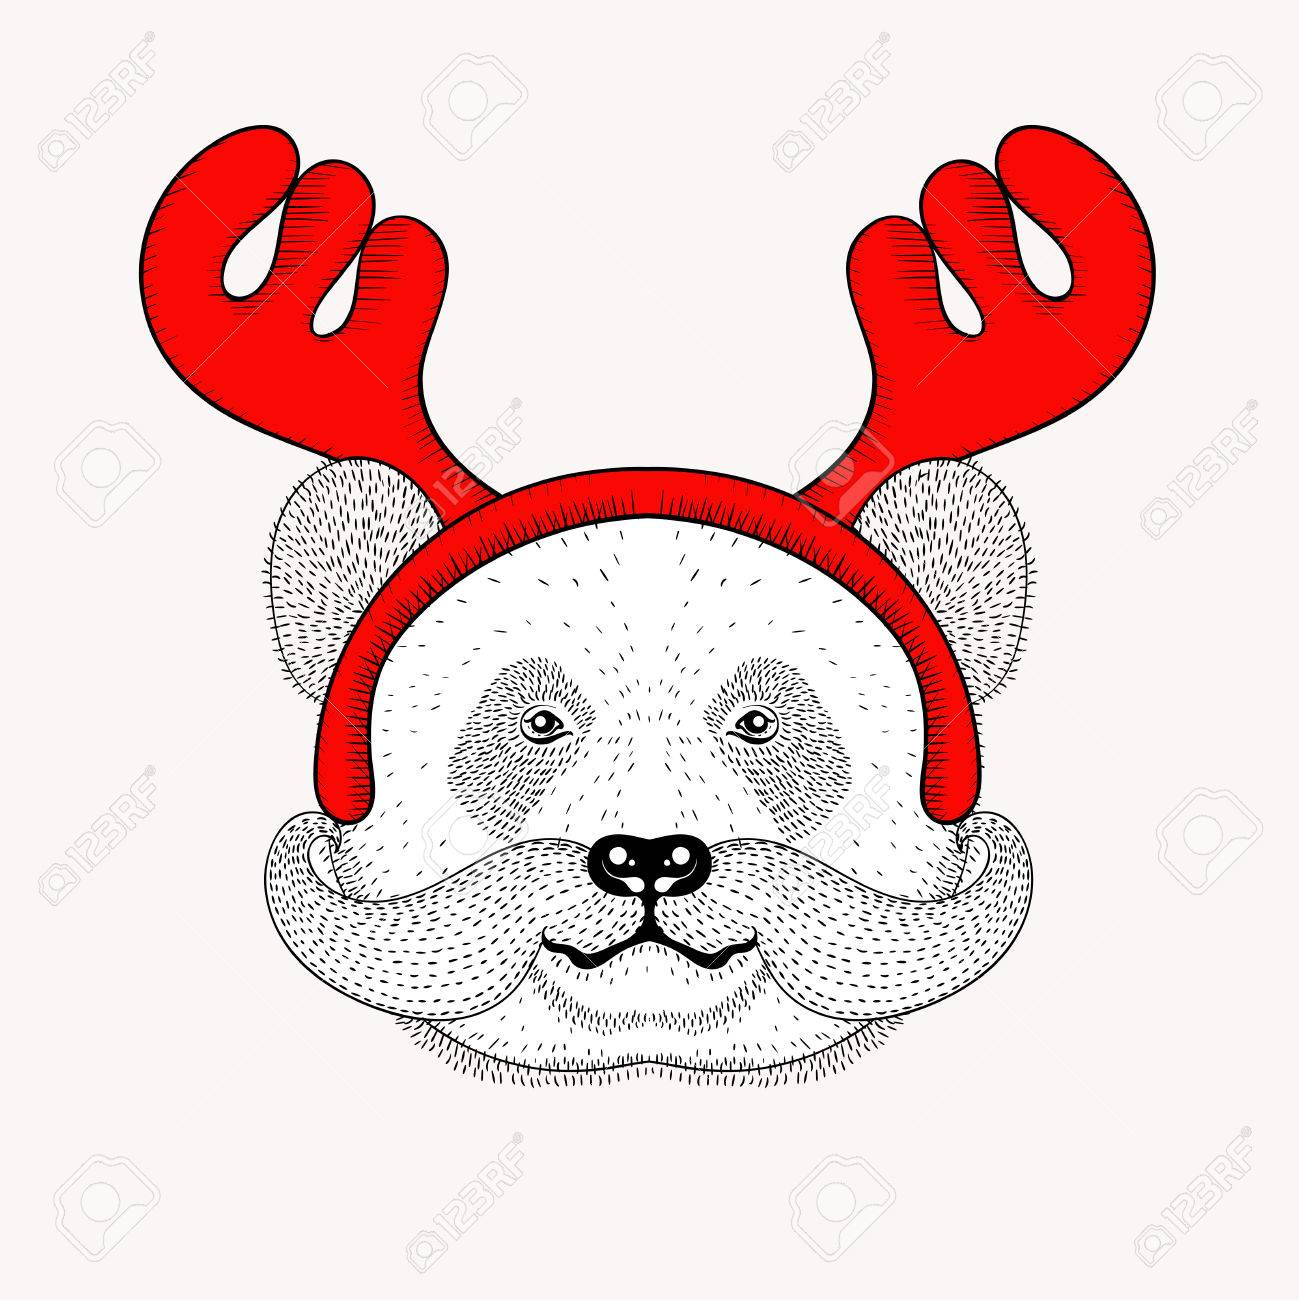 1299x1300 Sketch Panda Face With Mustache In A Reindeer Antlers. Hand Drawn